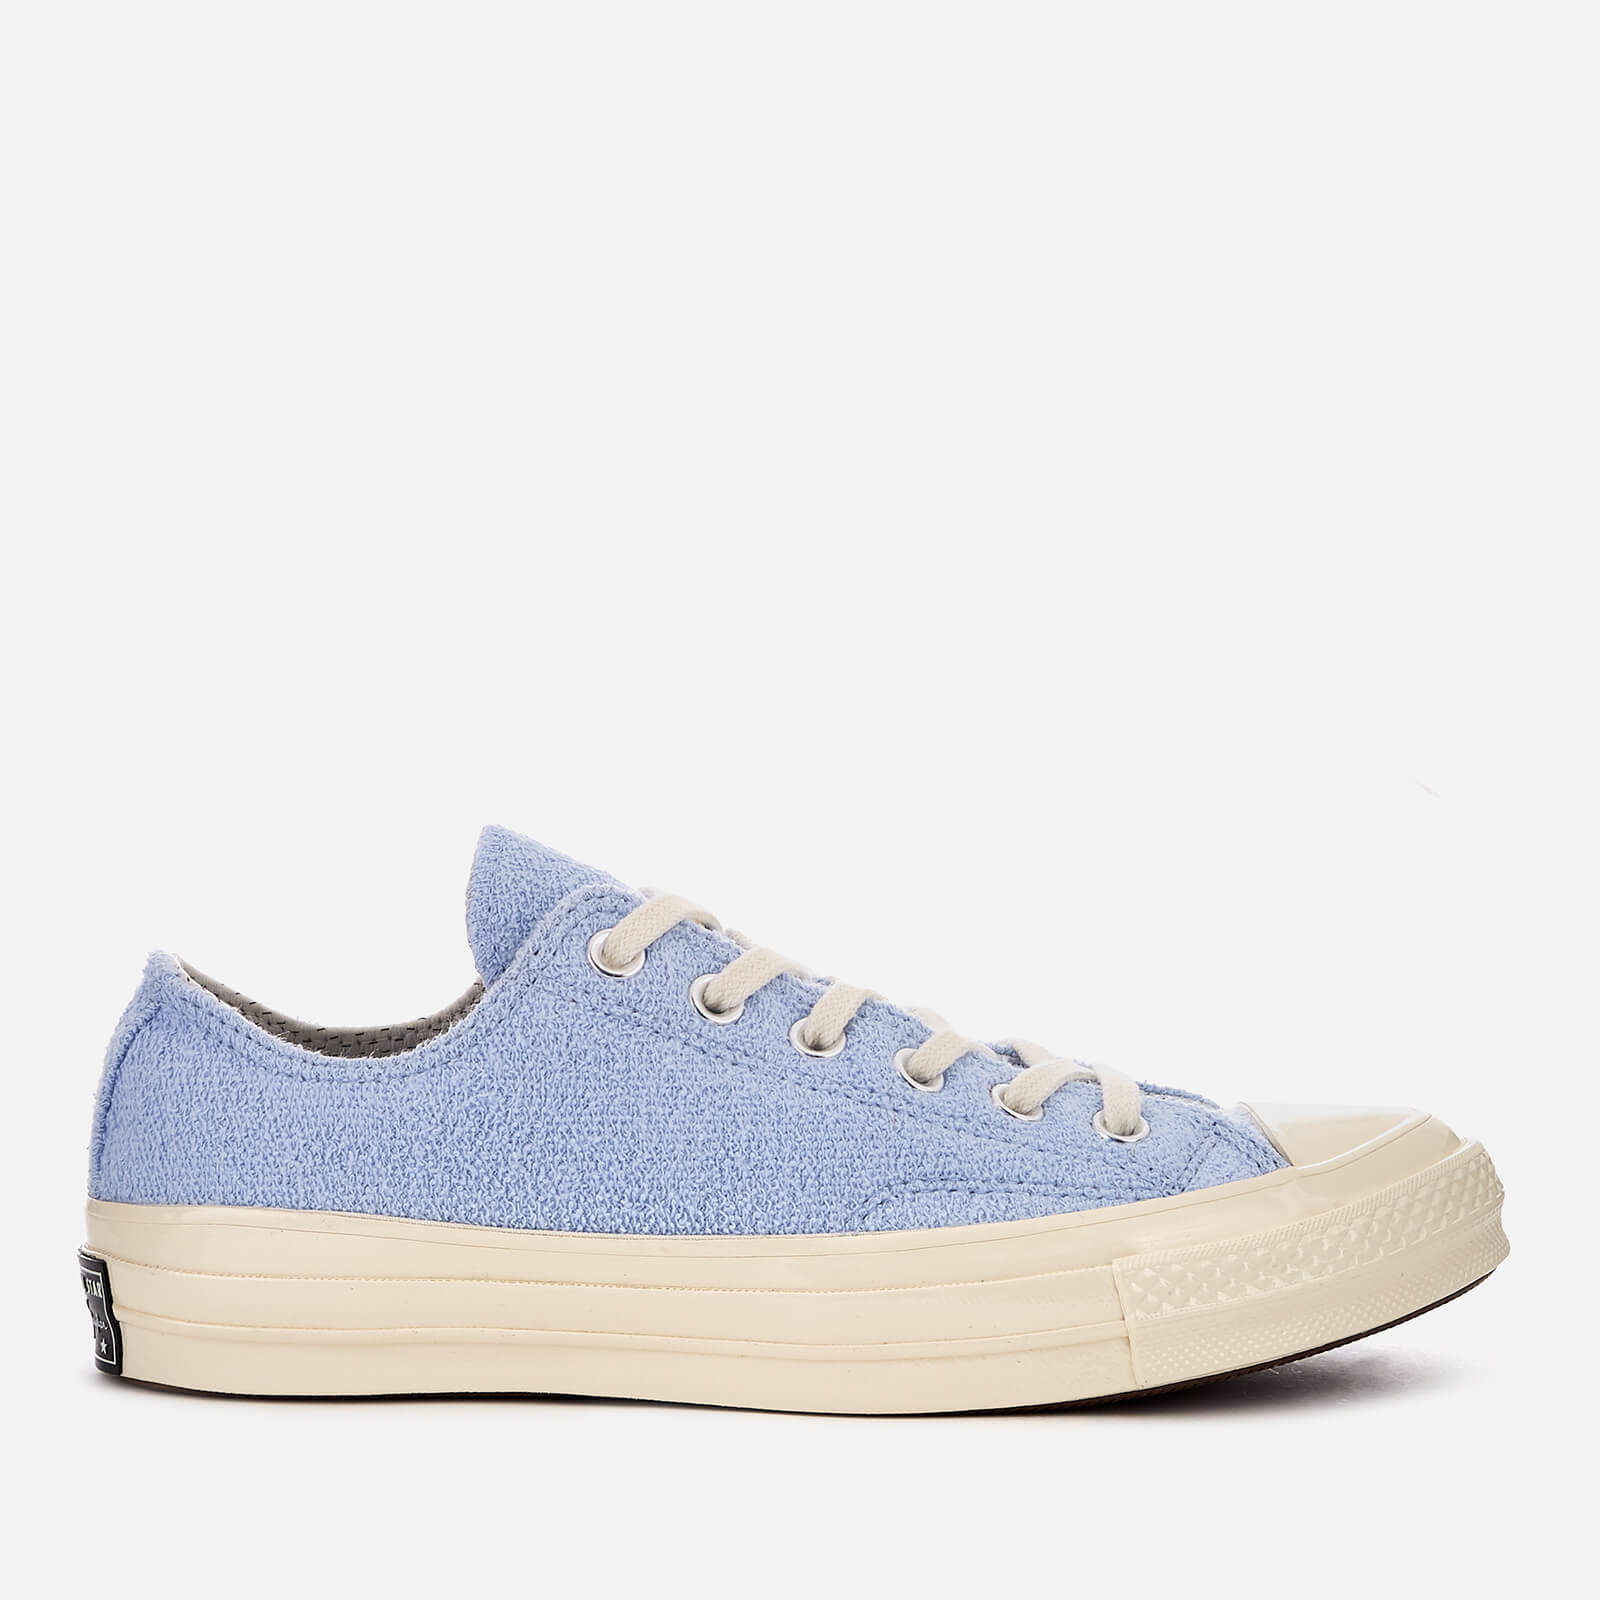 17fe189e7425 Converse Chuck Taylor All Star 70 Ox Trainers - Blue Chill - Free UK  Delivery over £50